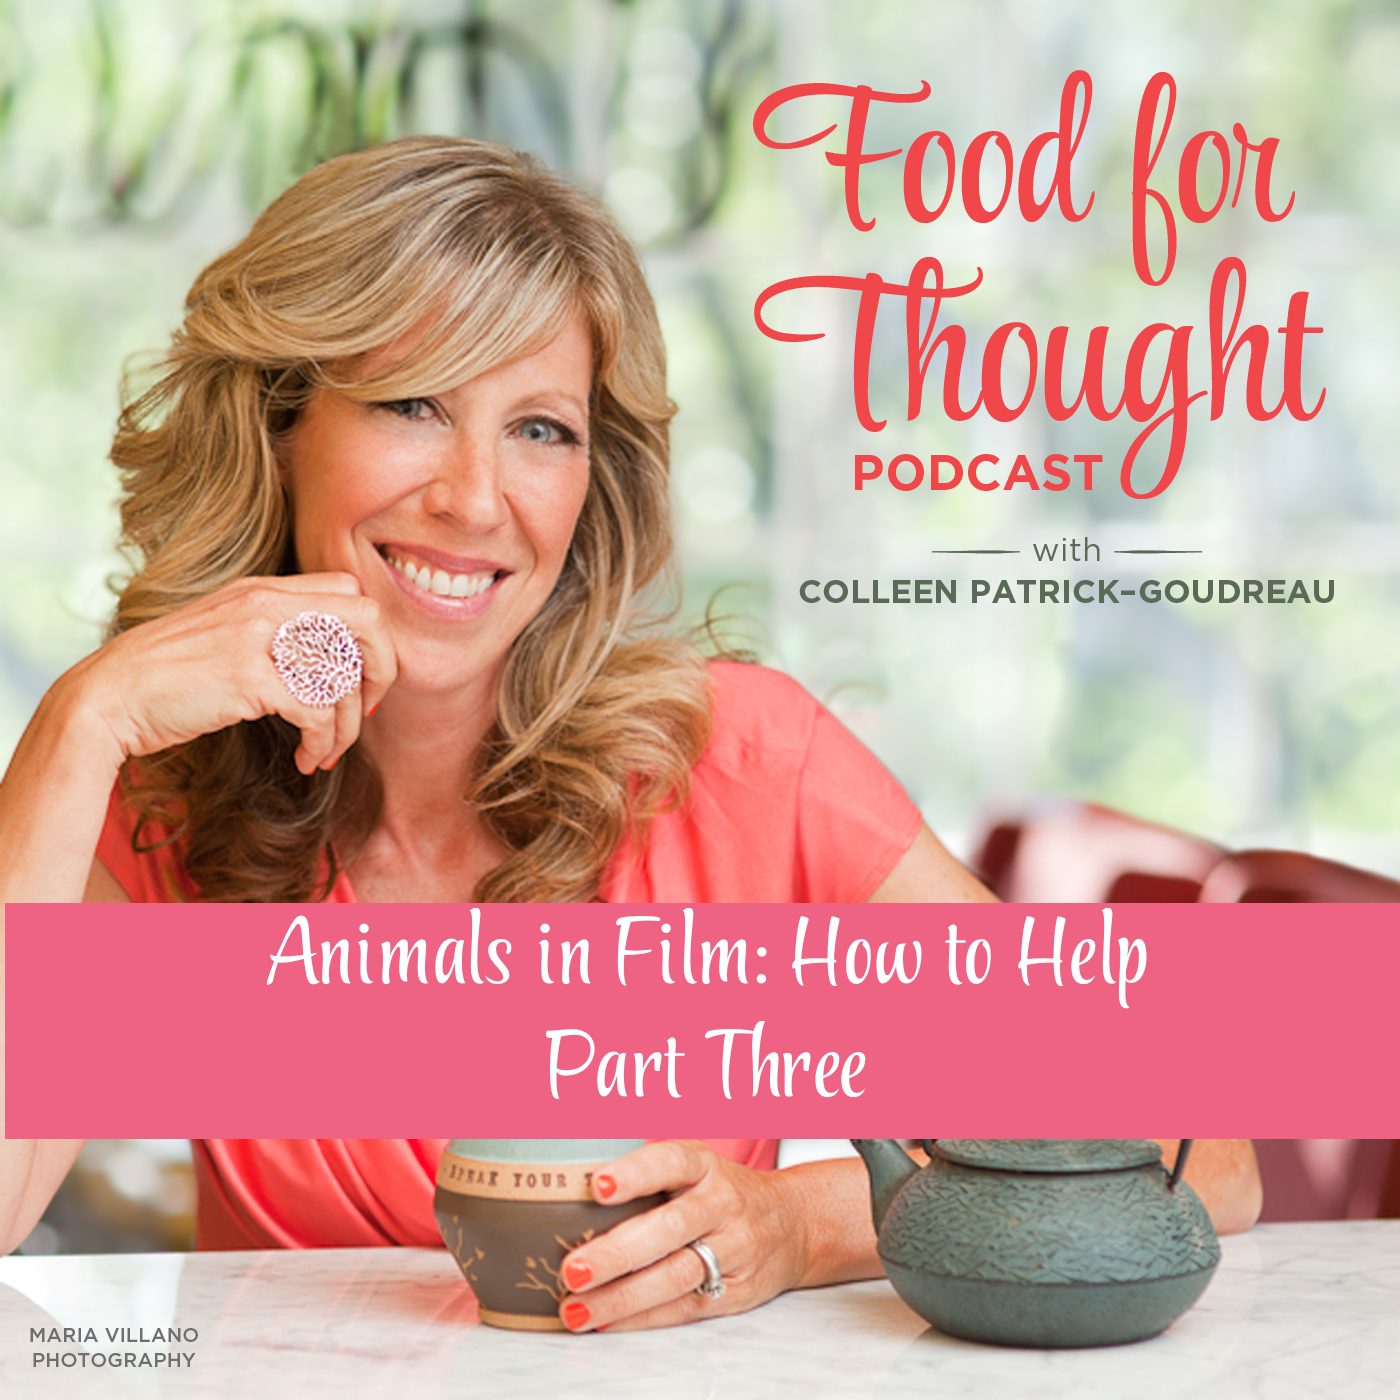 Animals in Film - Part 3: How to Help